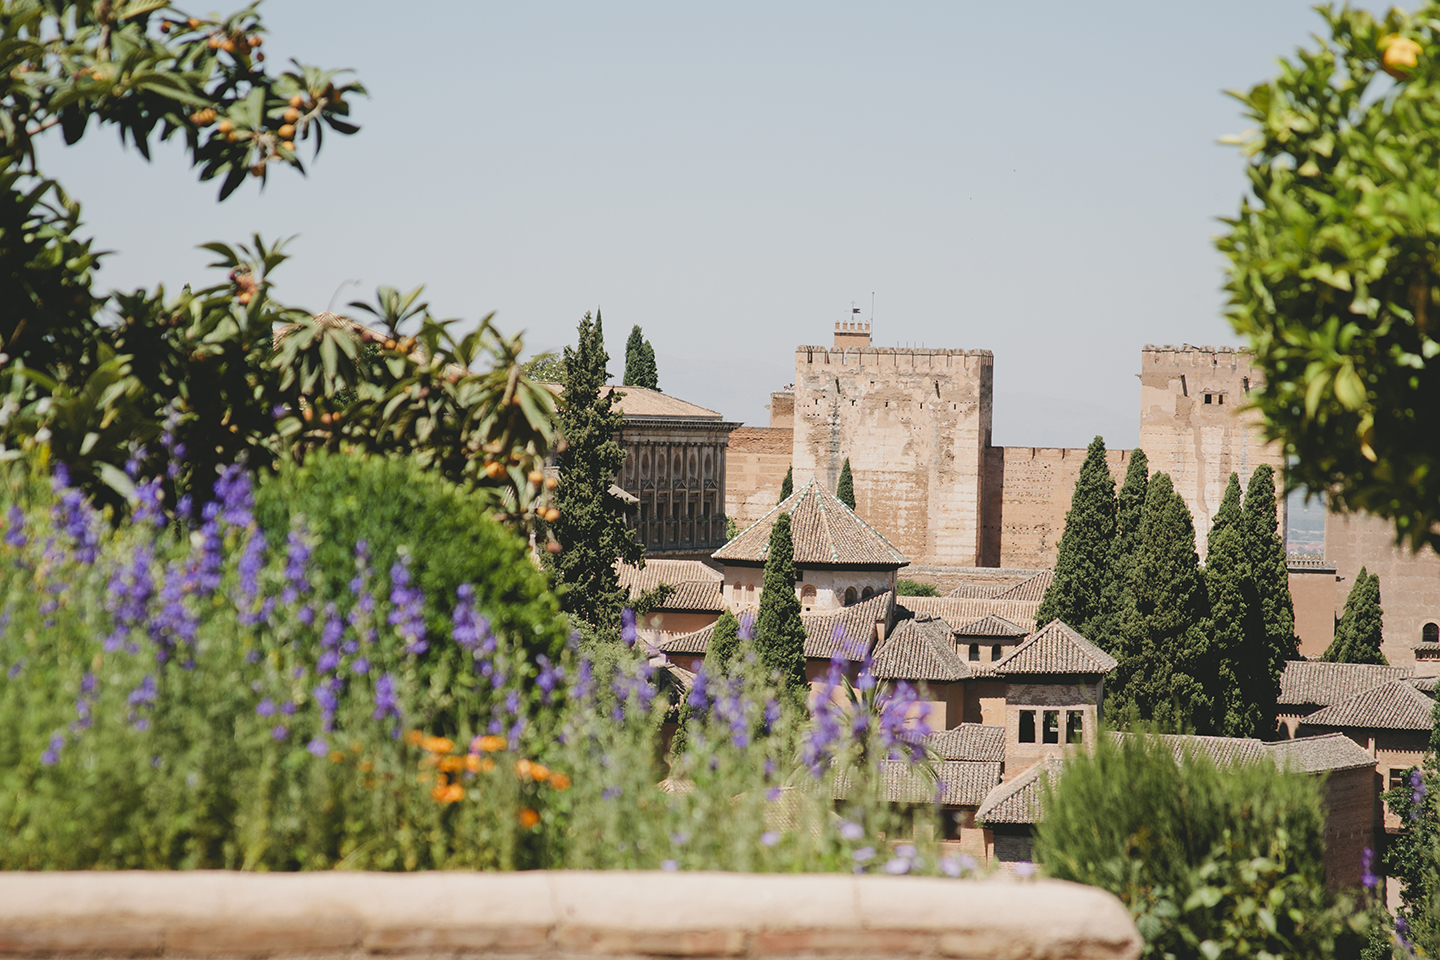 A visit to the Alhambra from the Print Club Ltd. Journal